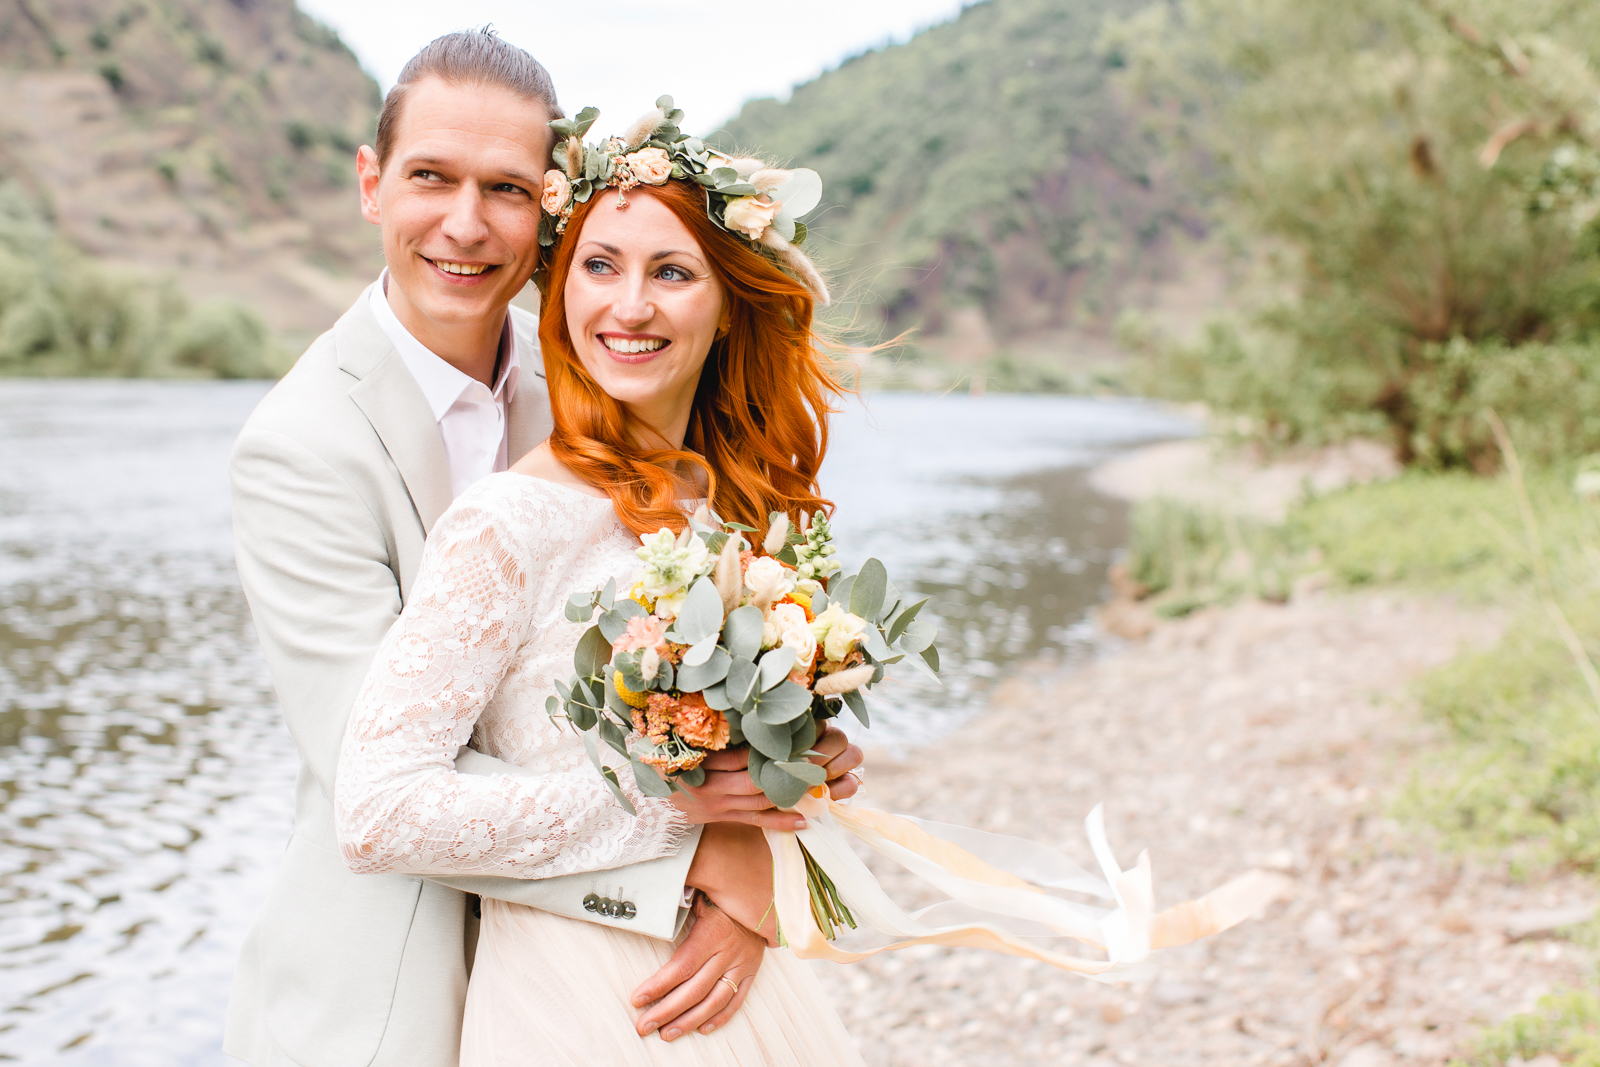 images by Liebe im Licht Hochzeitsfotografie german weddings styling colour theme terracotta country style